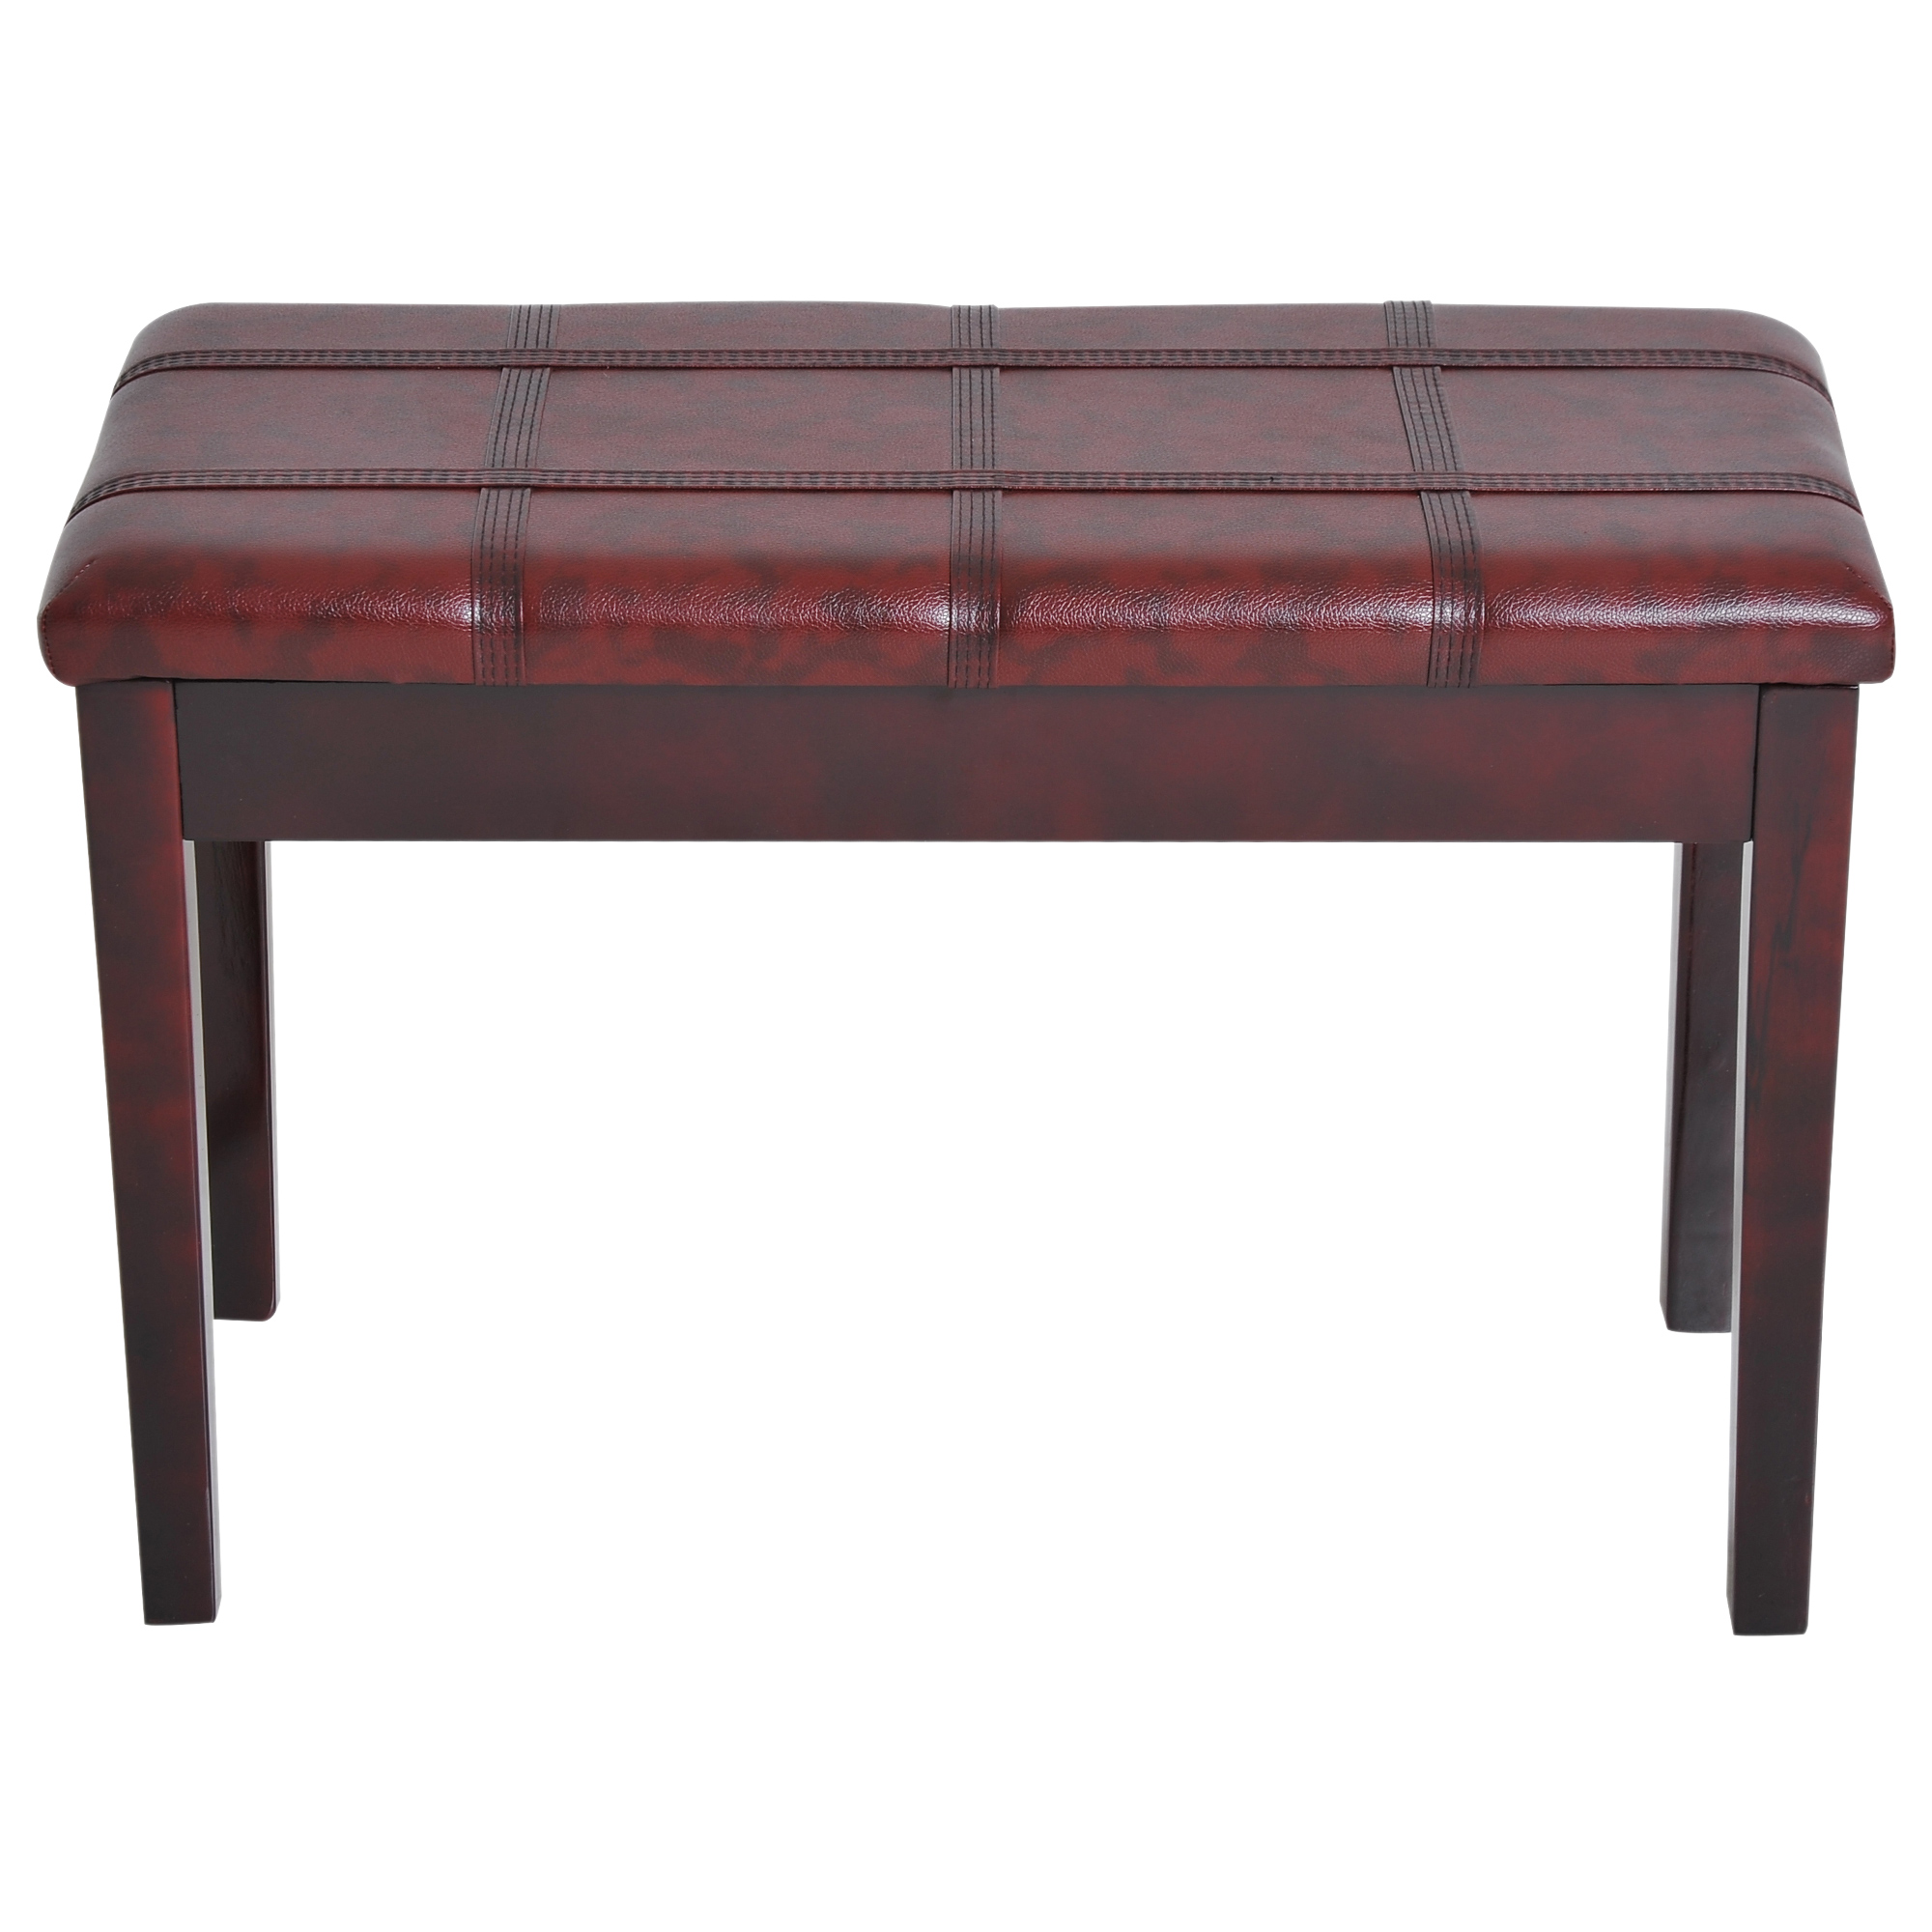 Two-Person-Lift-Top-Piano-Storage-Bench-Faux-Leather-Keyboard-Stool-Birchwood thumbnail 24